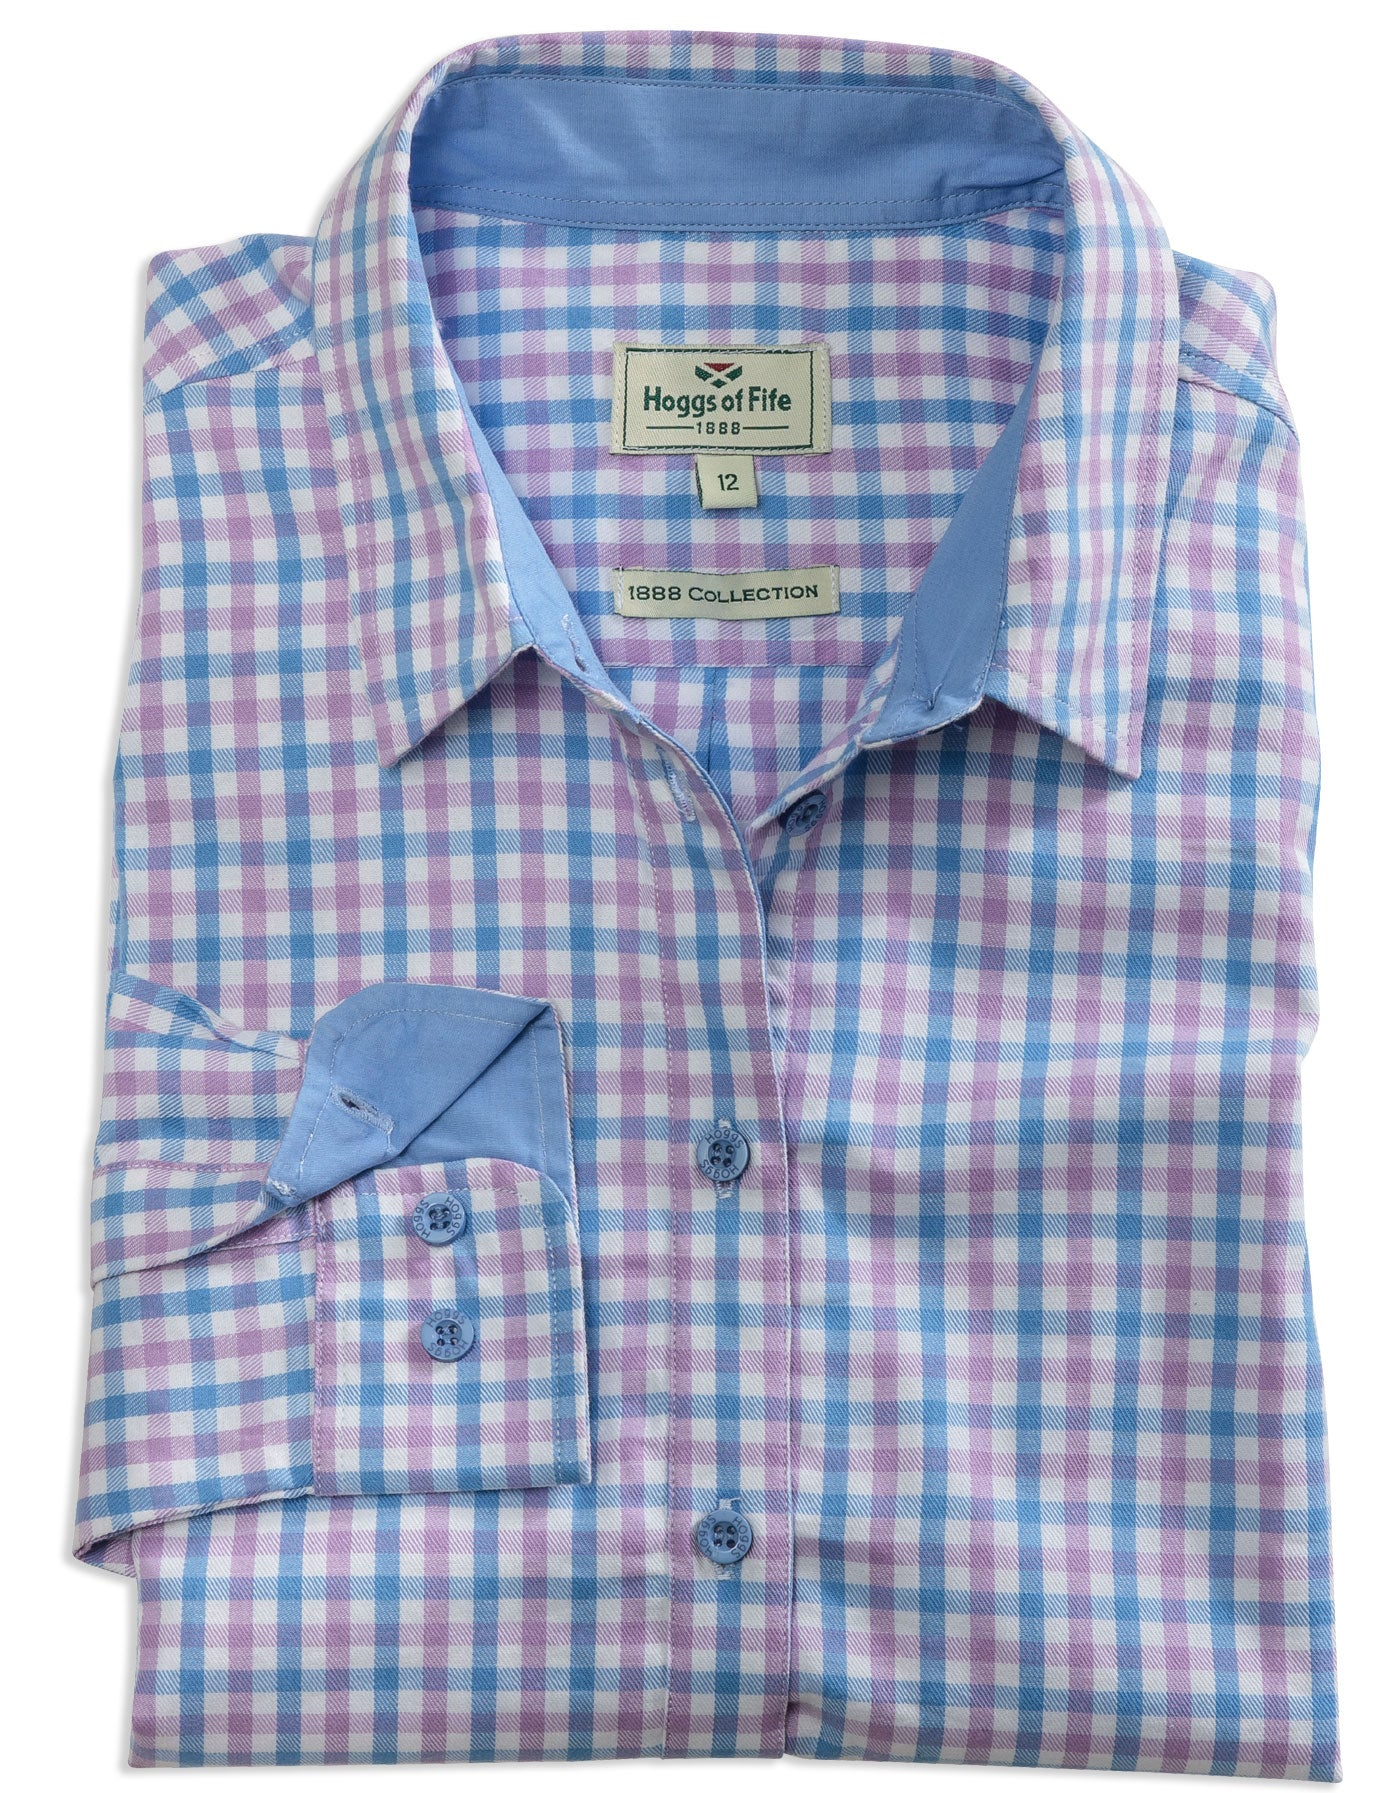 ladies blue and pink check shirt